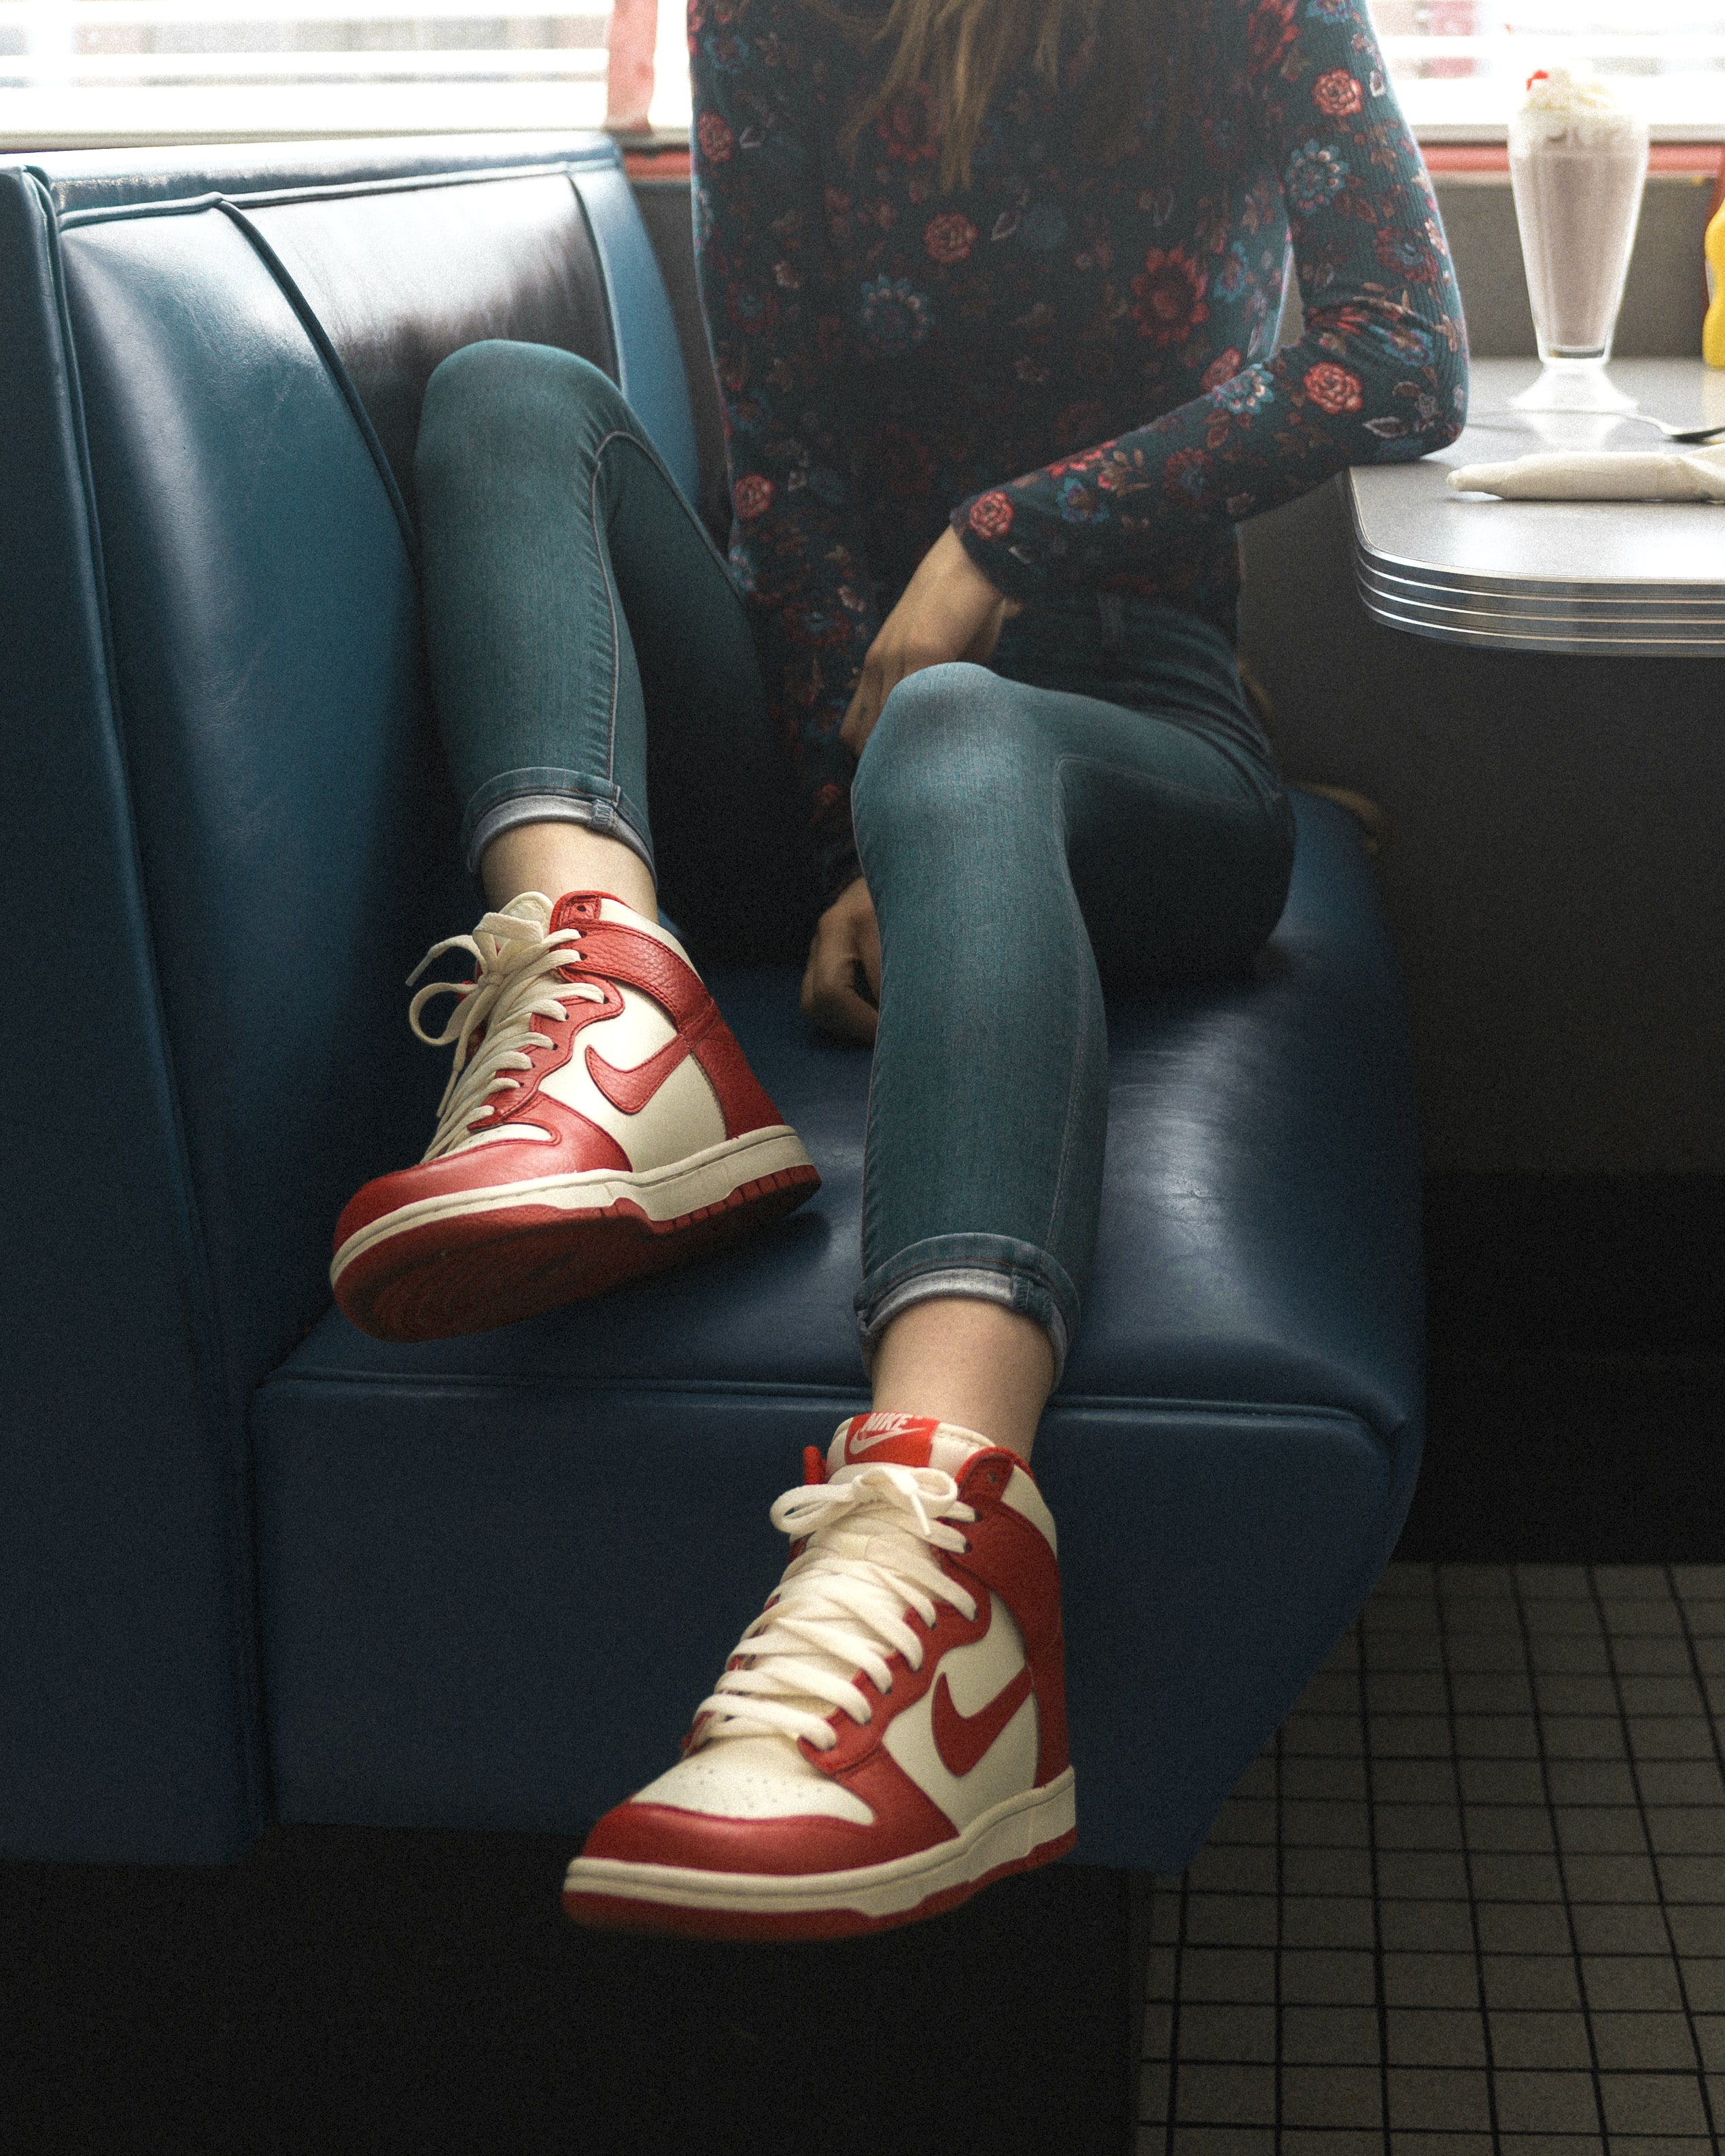 woman wearing red-and-white Nike mid-top sneakers while sitting on seat